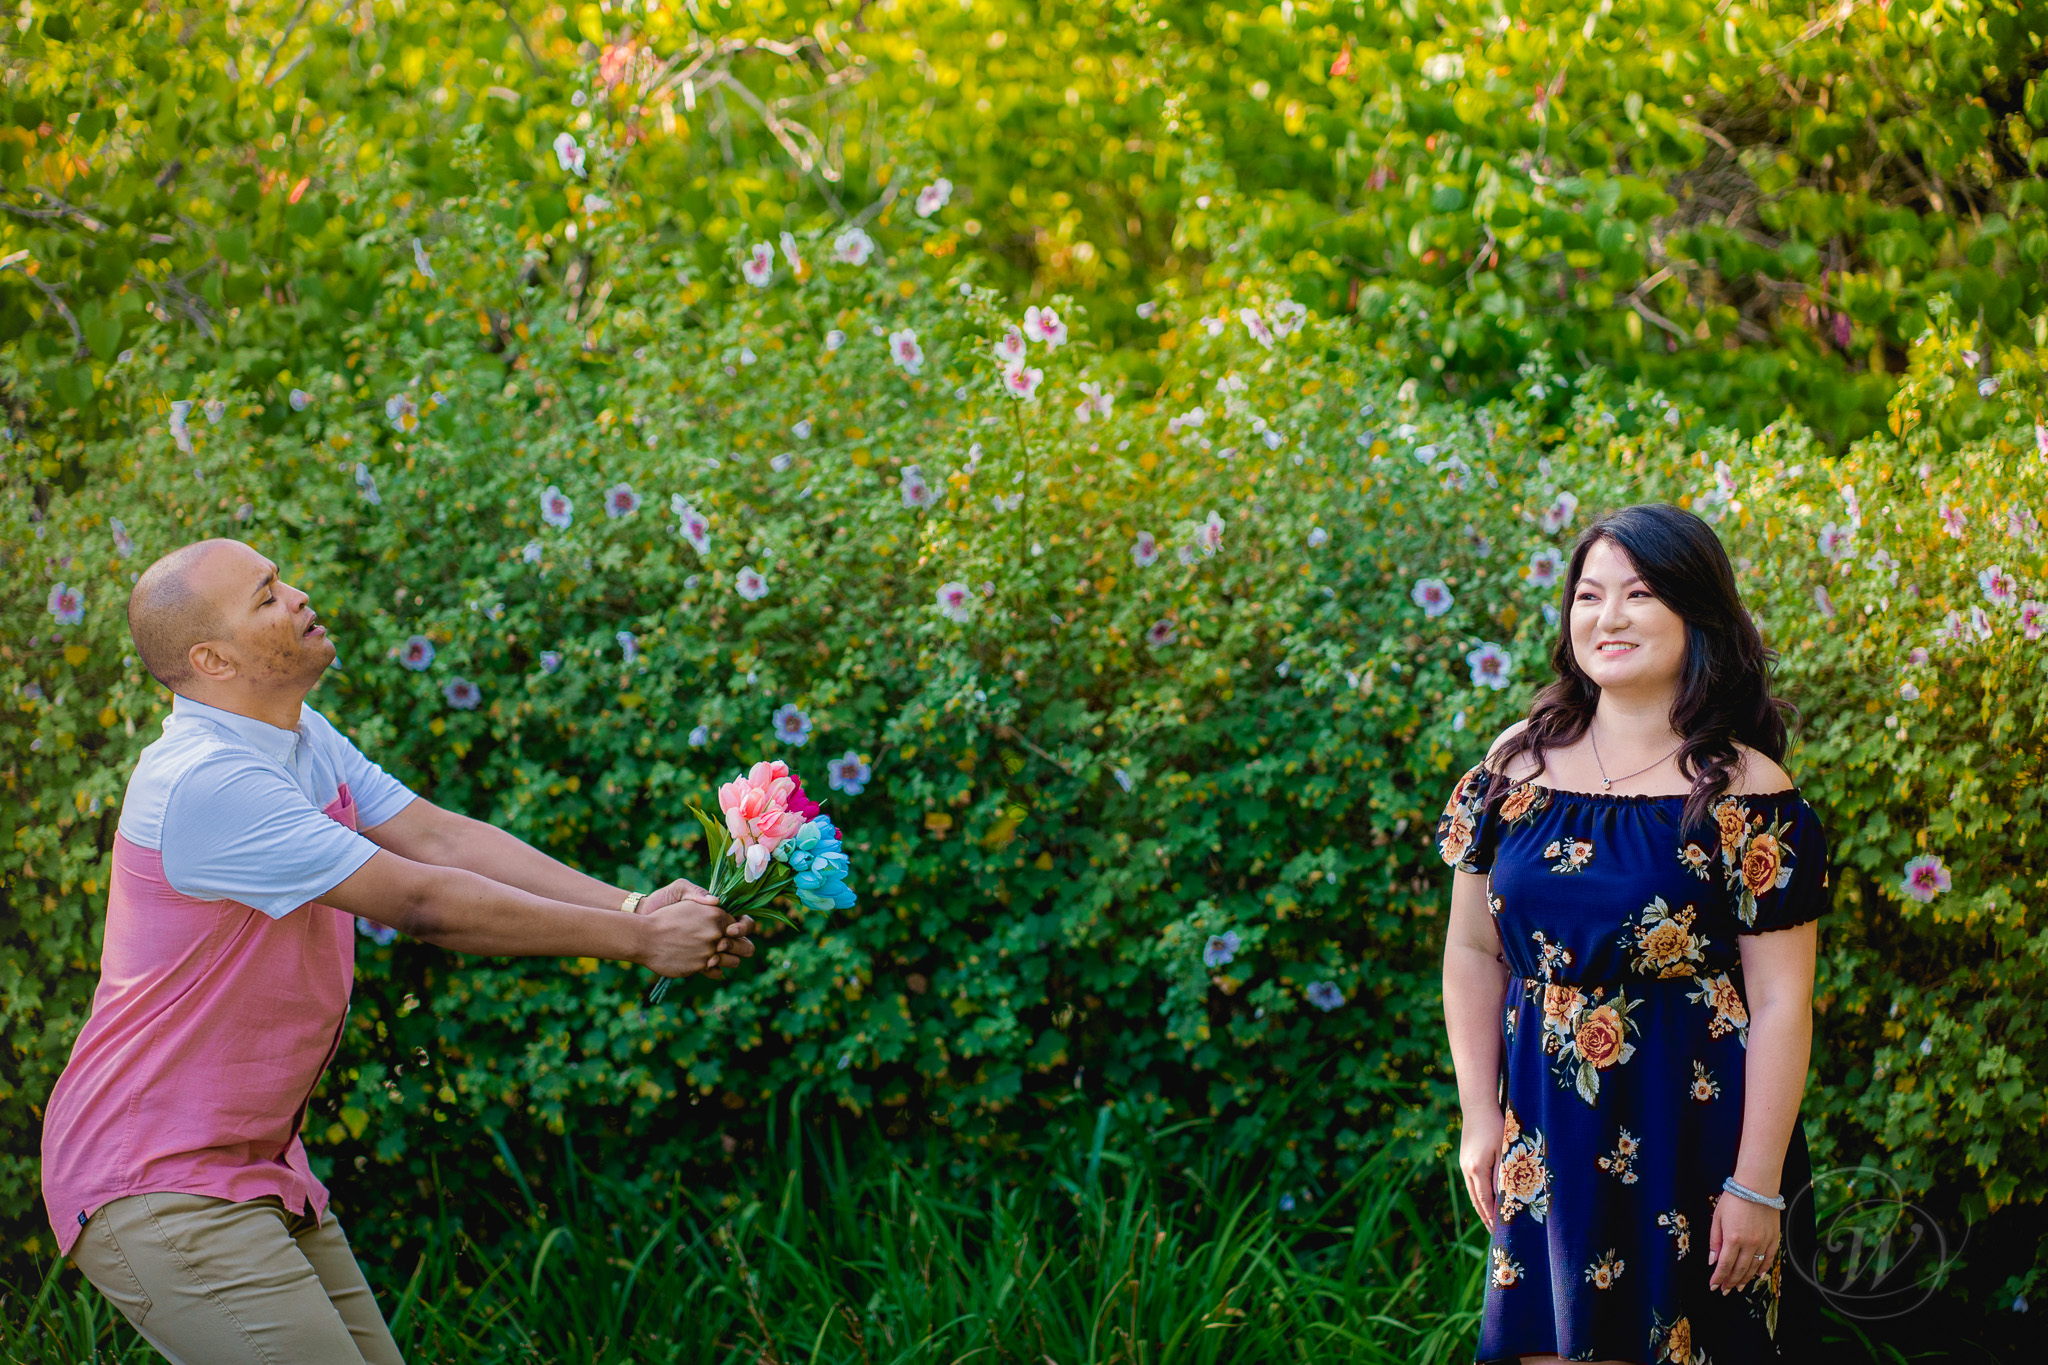 2019.06.16_Mosara-Brandon_Engagement_55.jpg